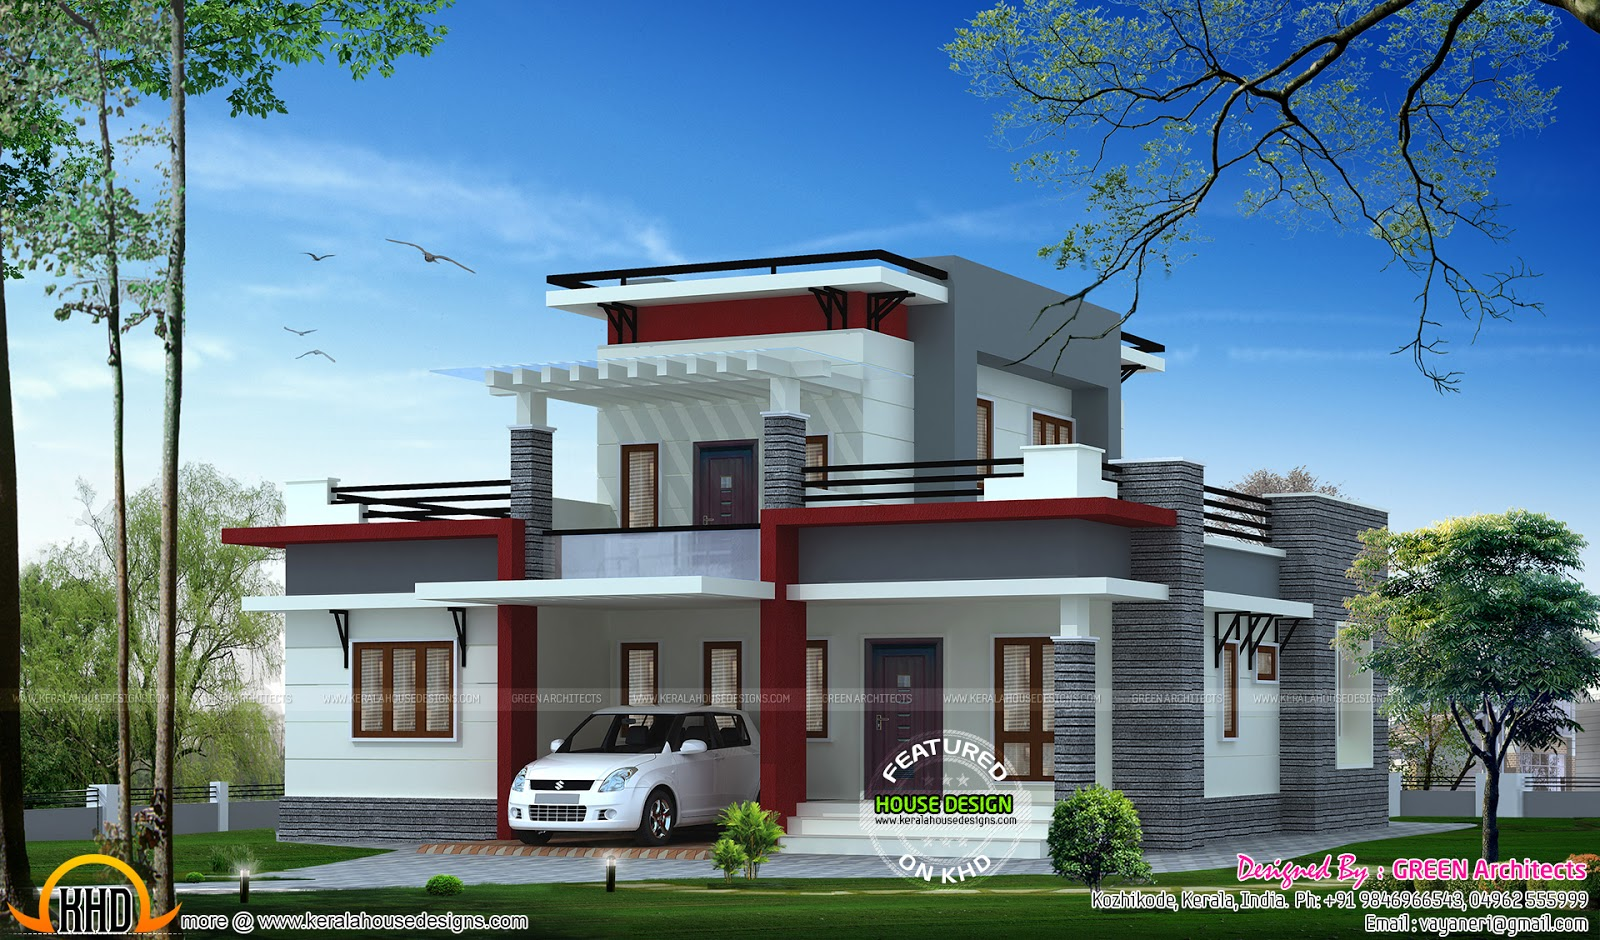 Small flat roof house kerala home design and floor plans Small flat roof house